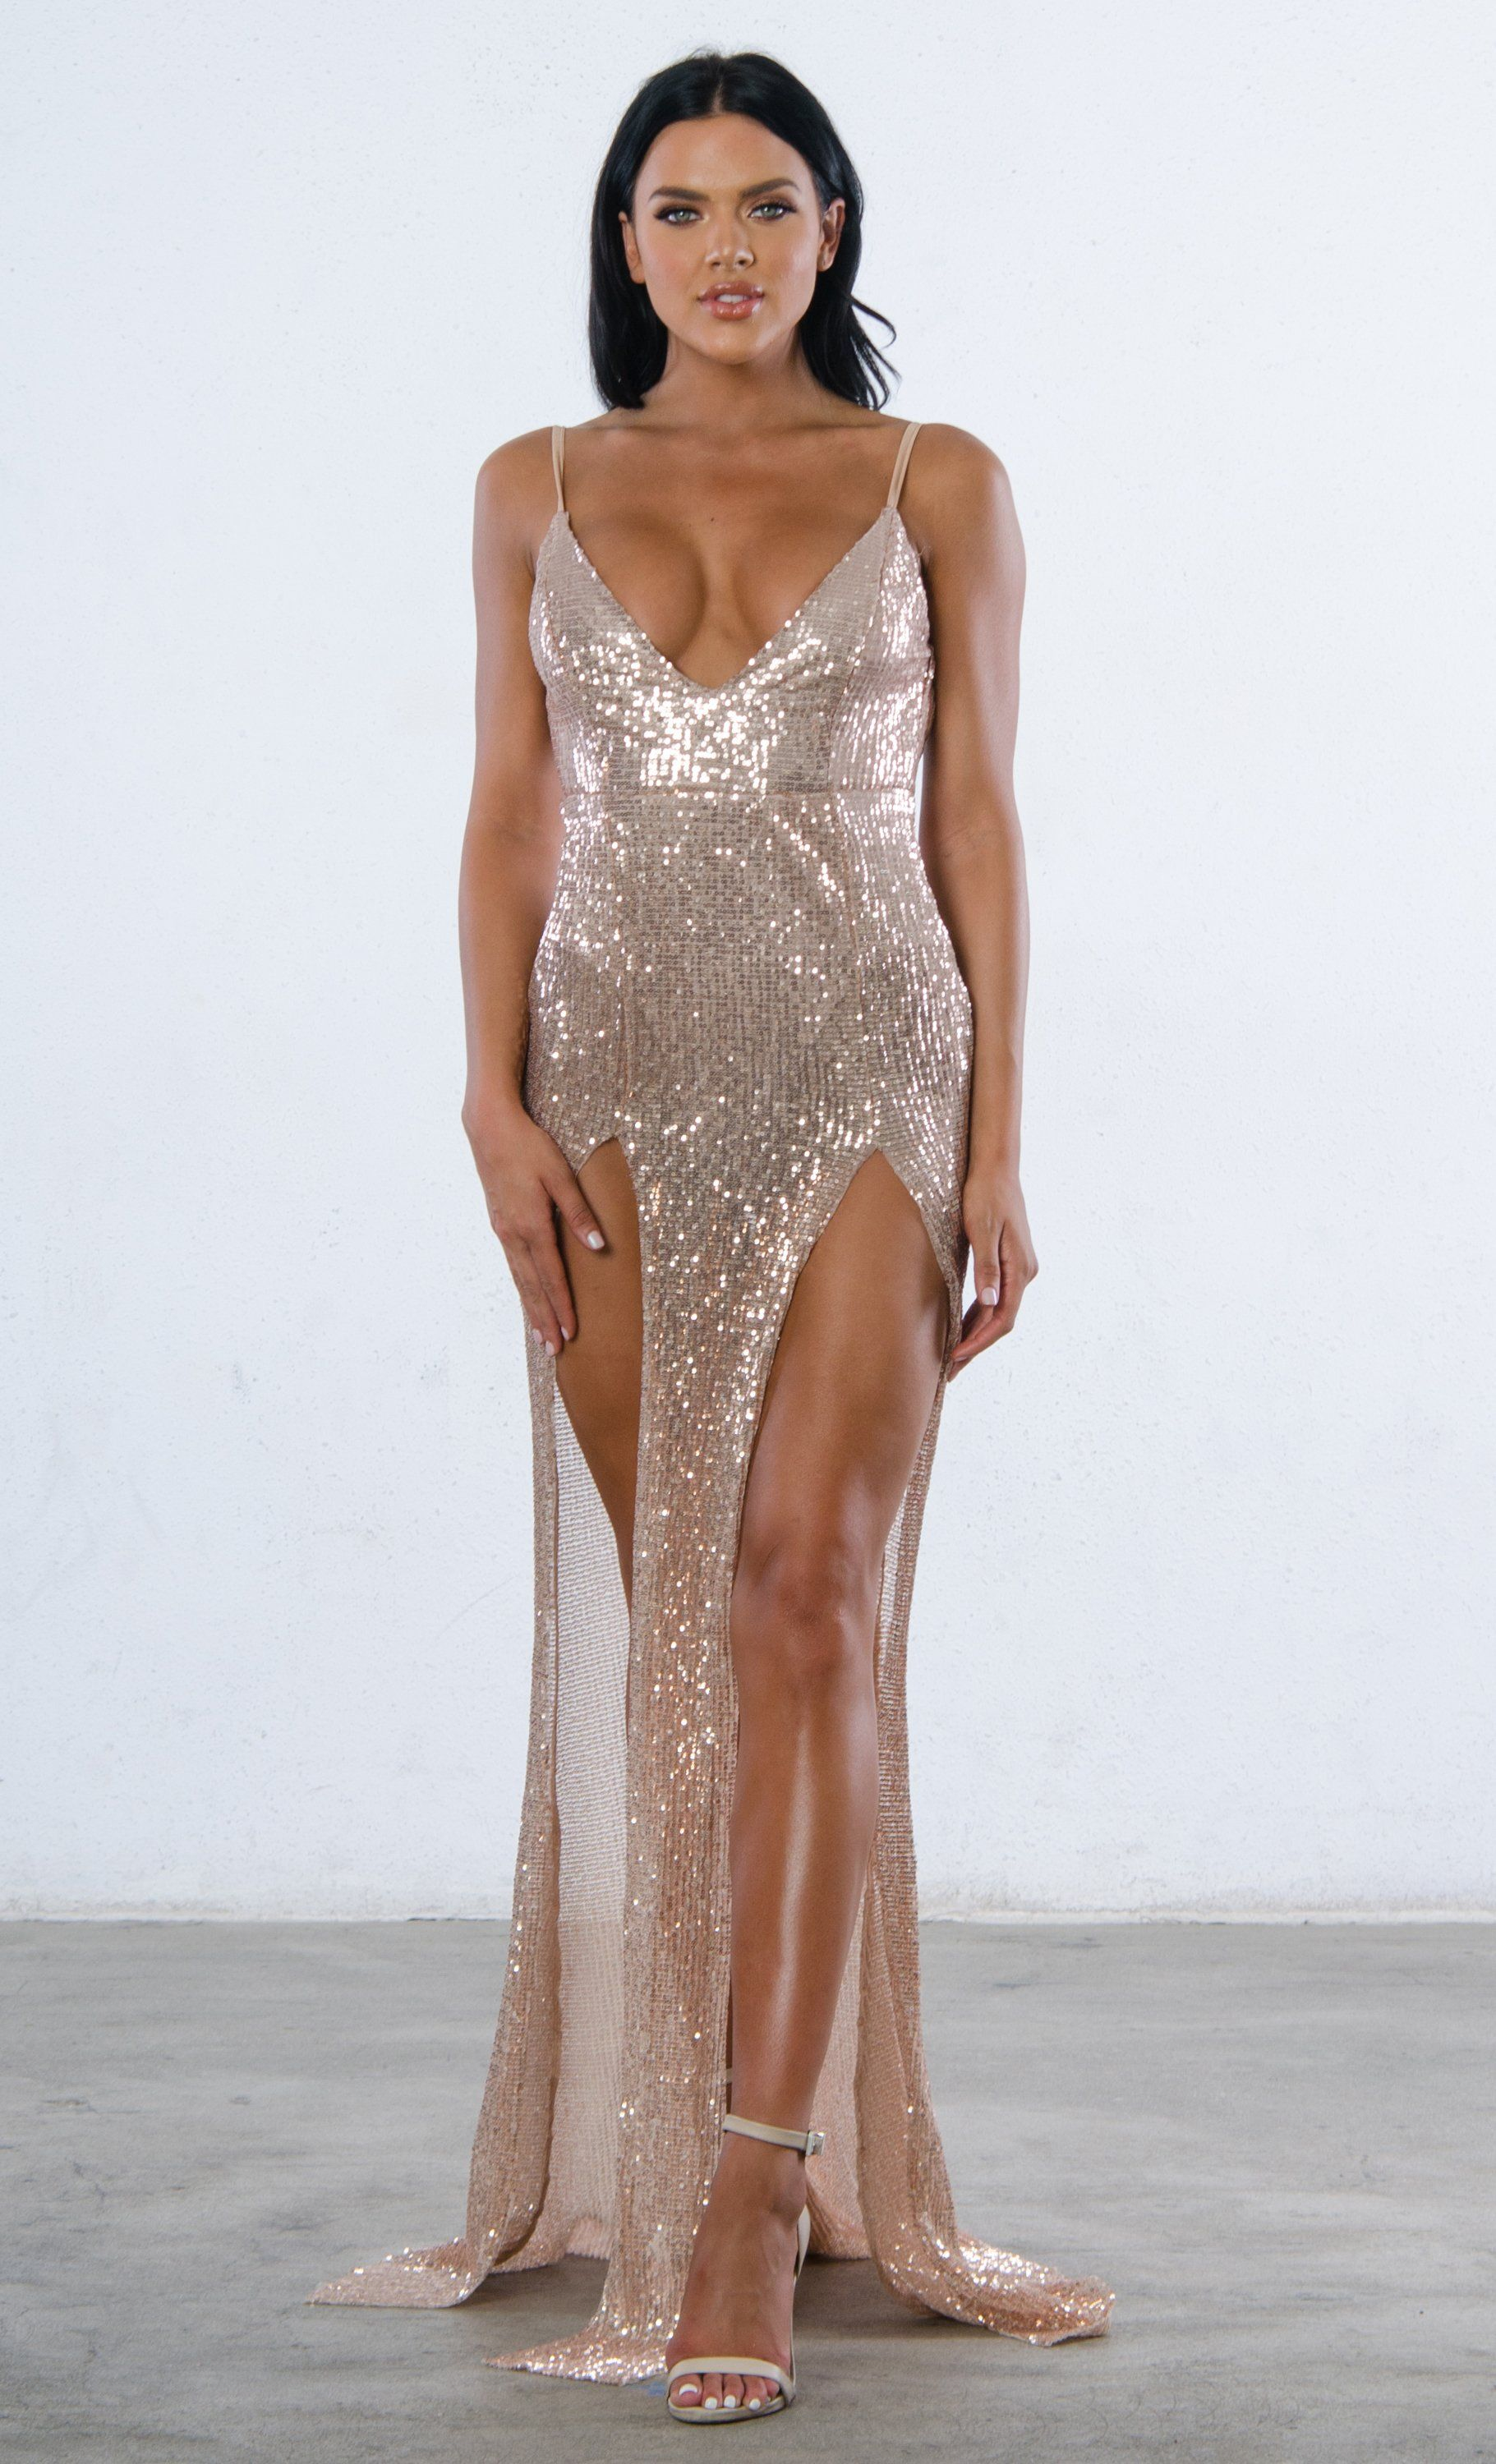 870dcfc1 Mystery Girl Champagne Semi Sheer Sequin Sleeveless Spaghetti Strap ...